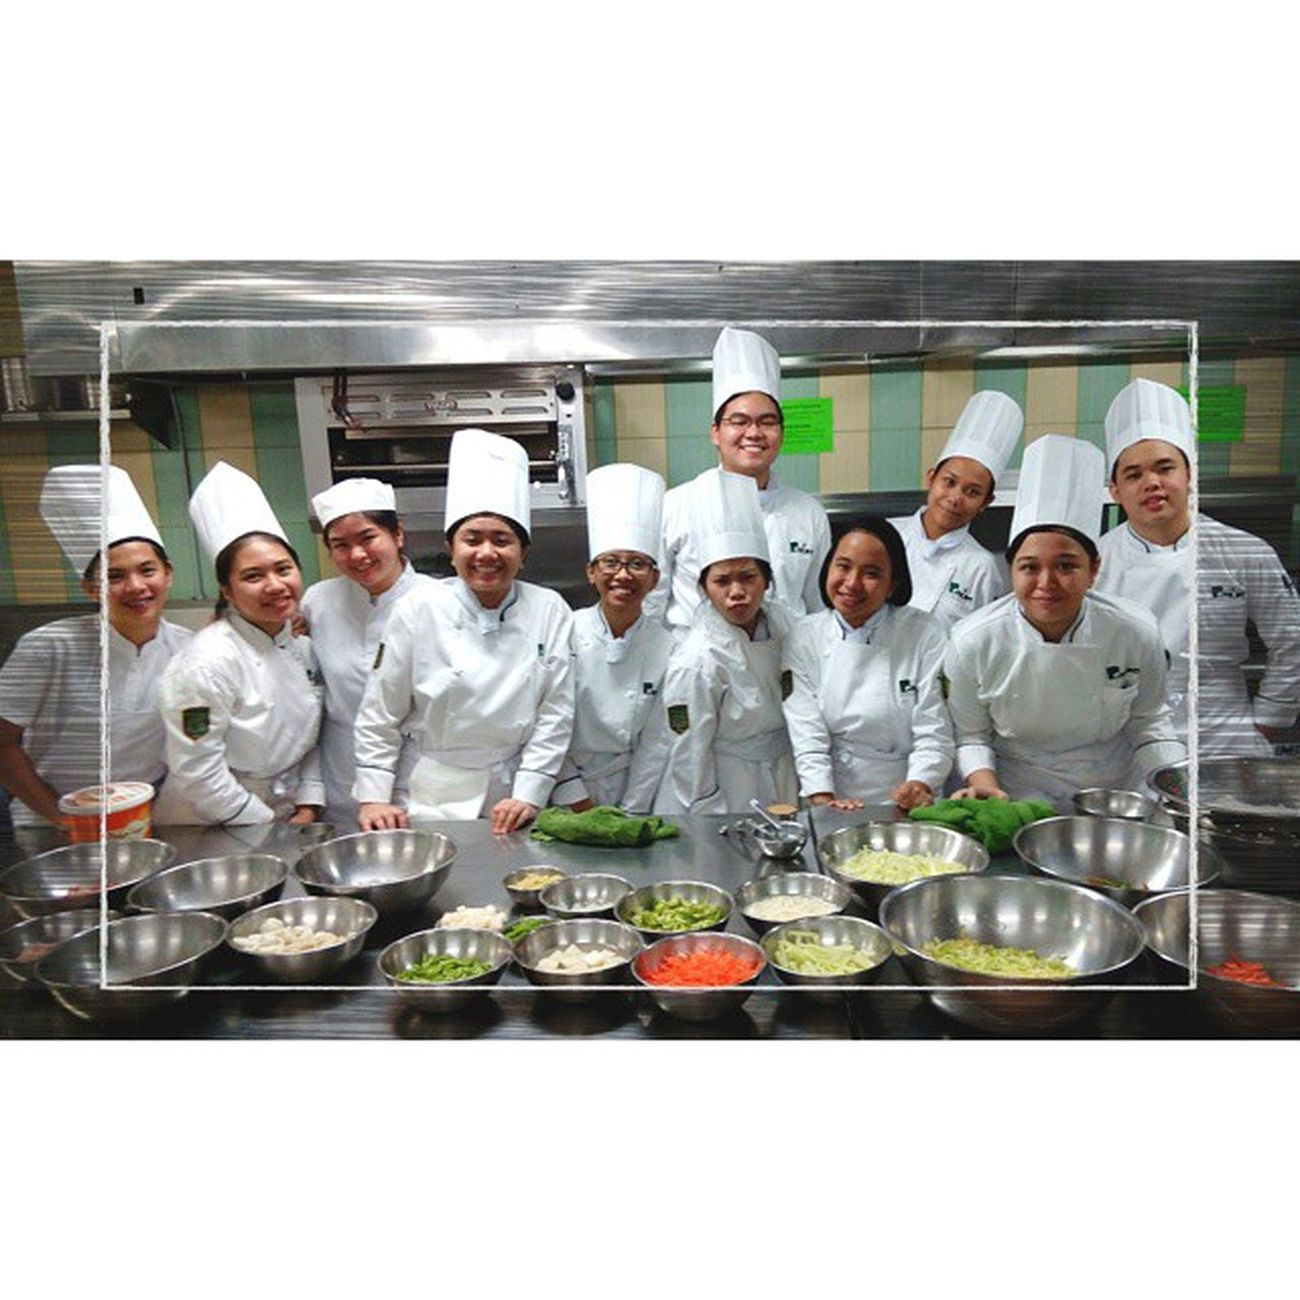 09.16.14 Mise-en-place || The next batch of culinary artists! ⚡ . . . Primlab Gastronomy KitchenBoss Benilde themanansala